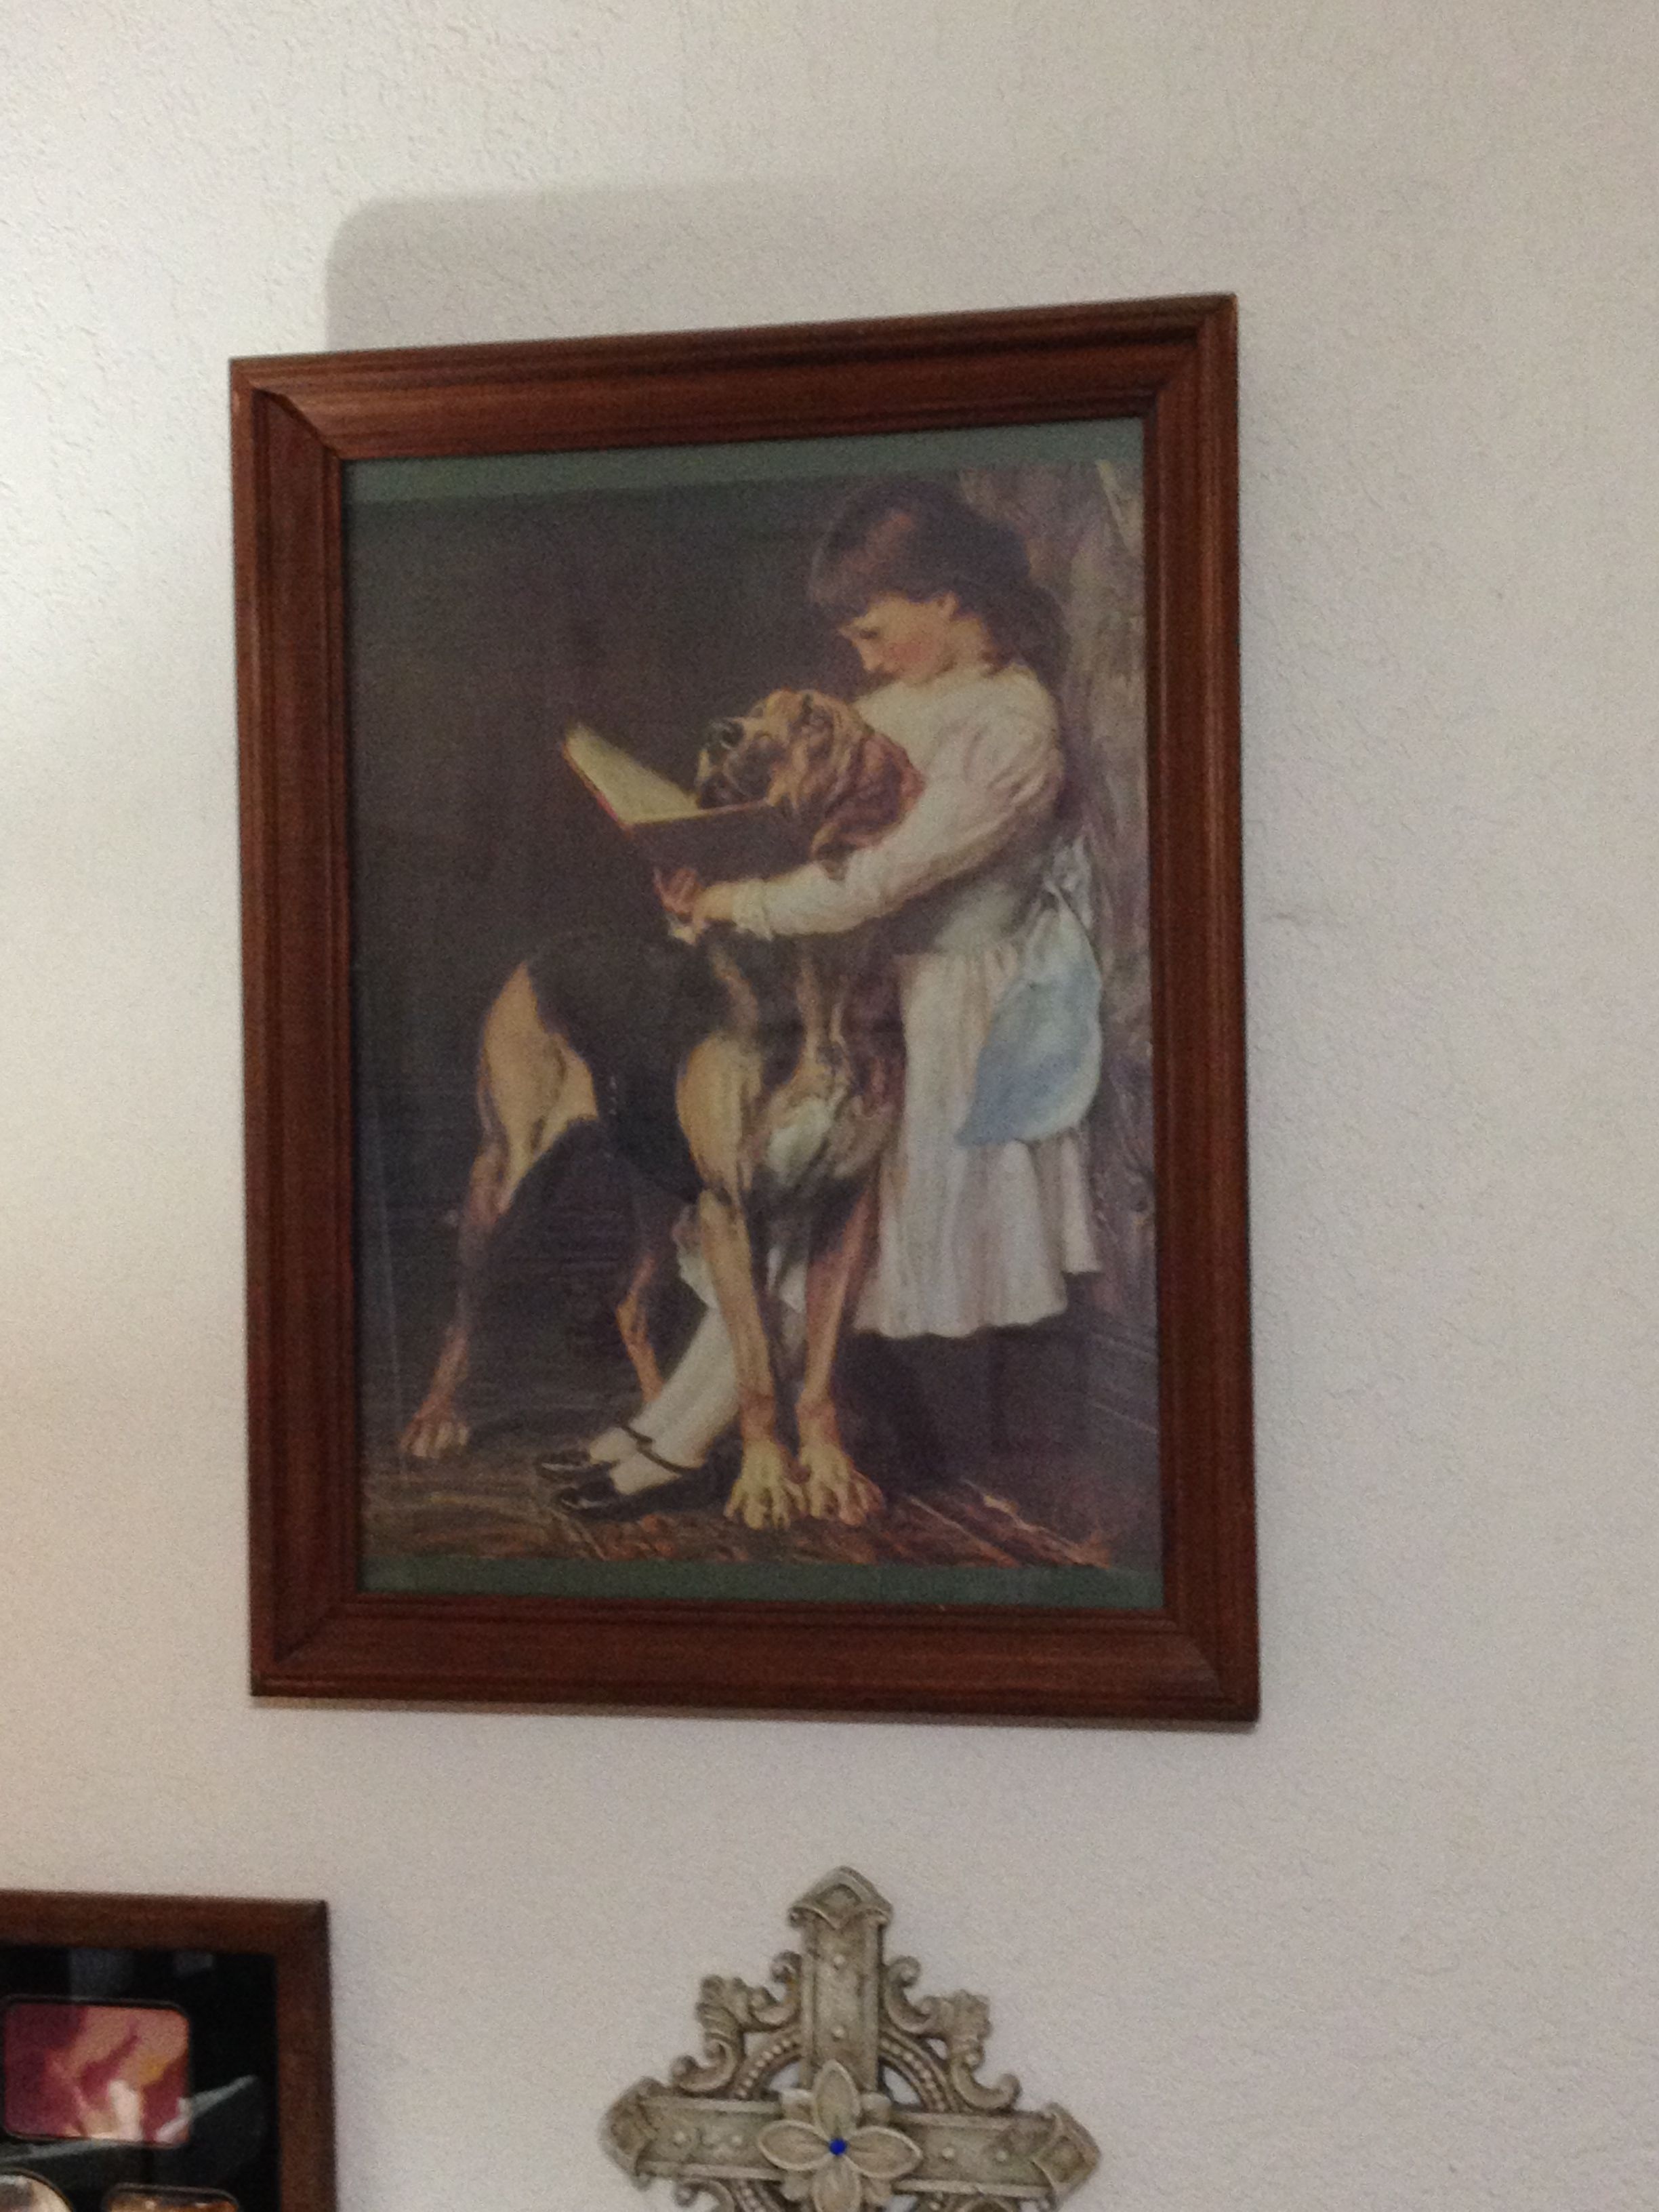 Victorian Girl & Her Dog - Picture in McloudDiane's Garage Sale in McLoud , OK for $25.00. Victorian Girl & Her Dog - Picture